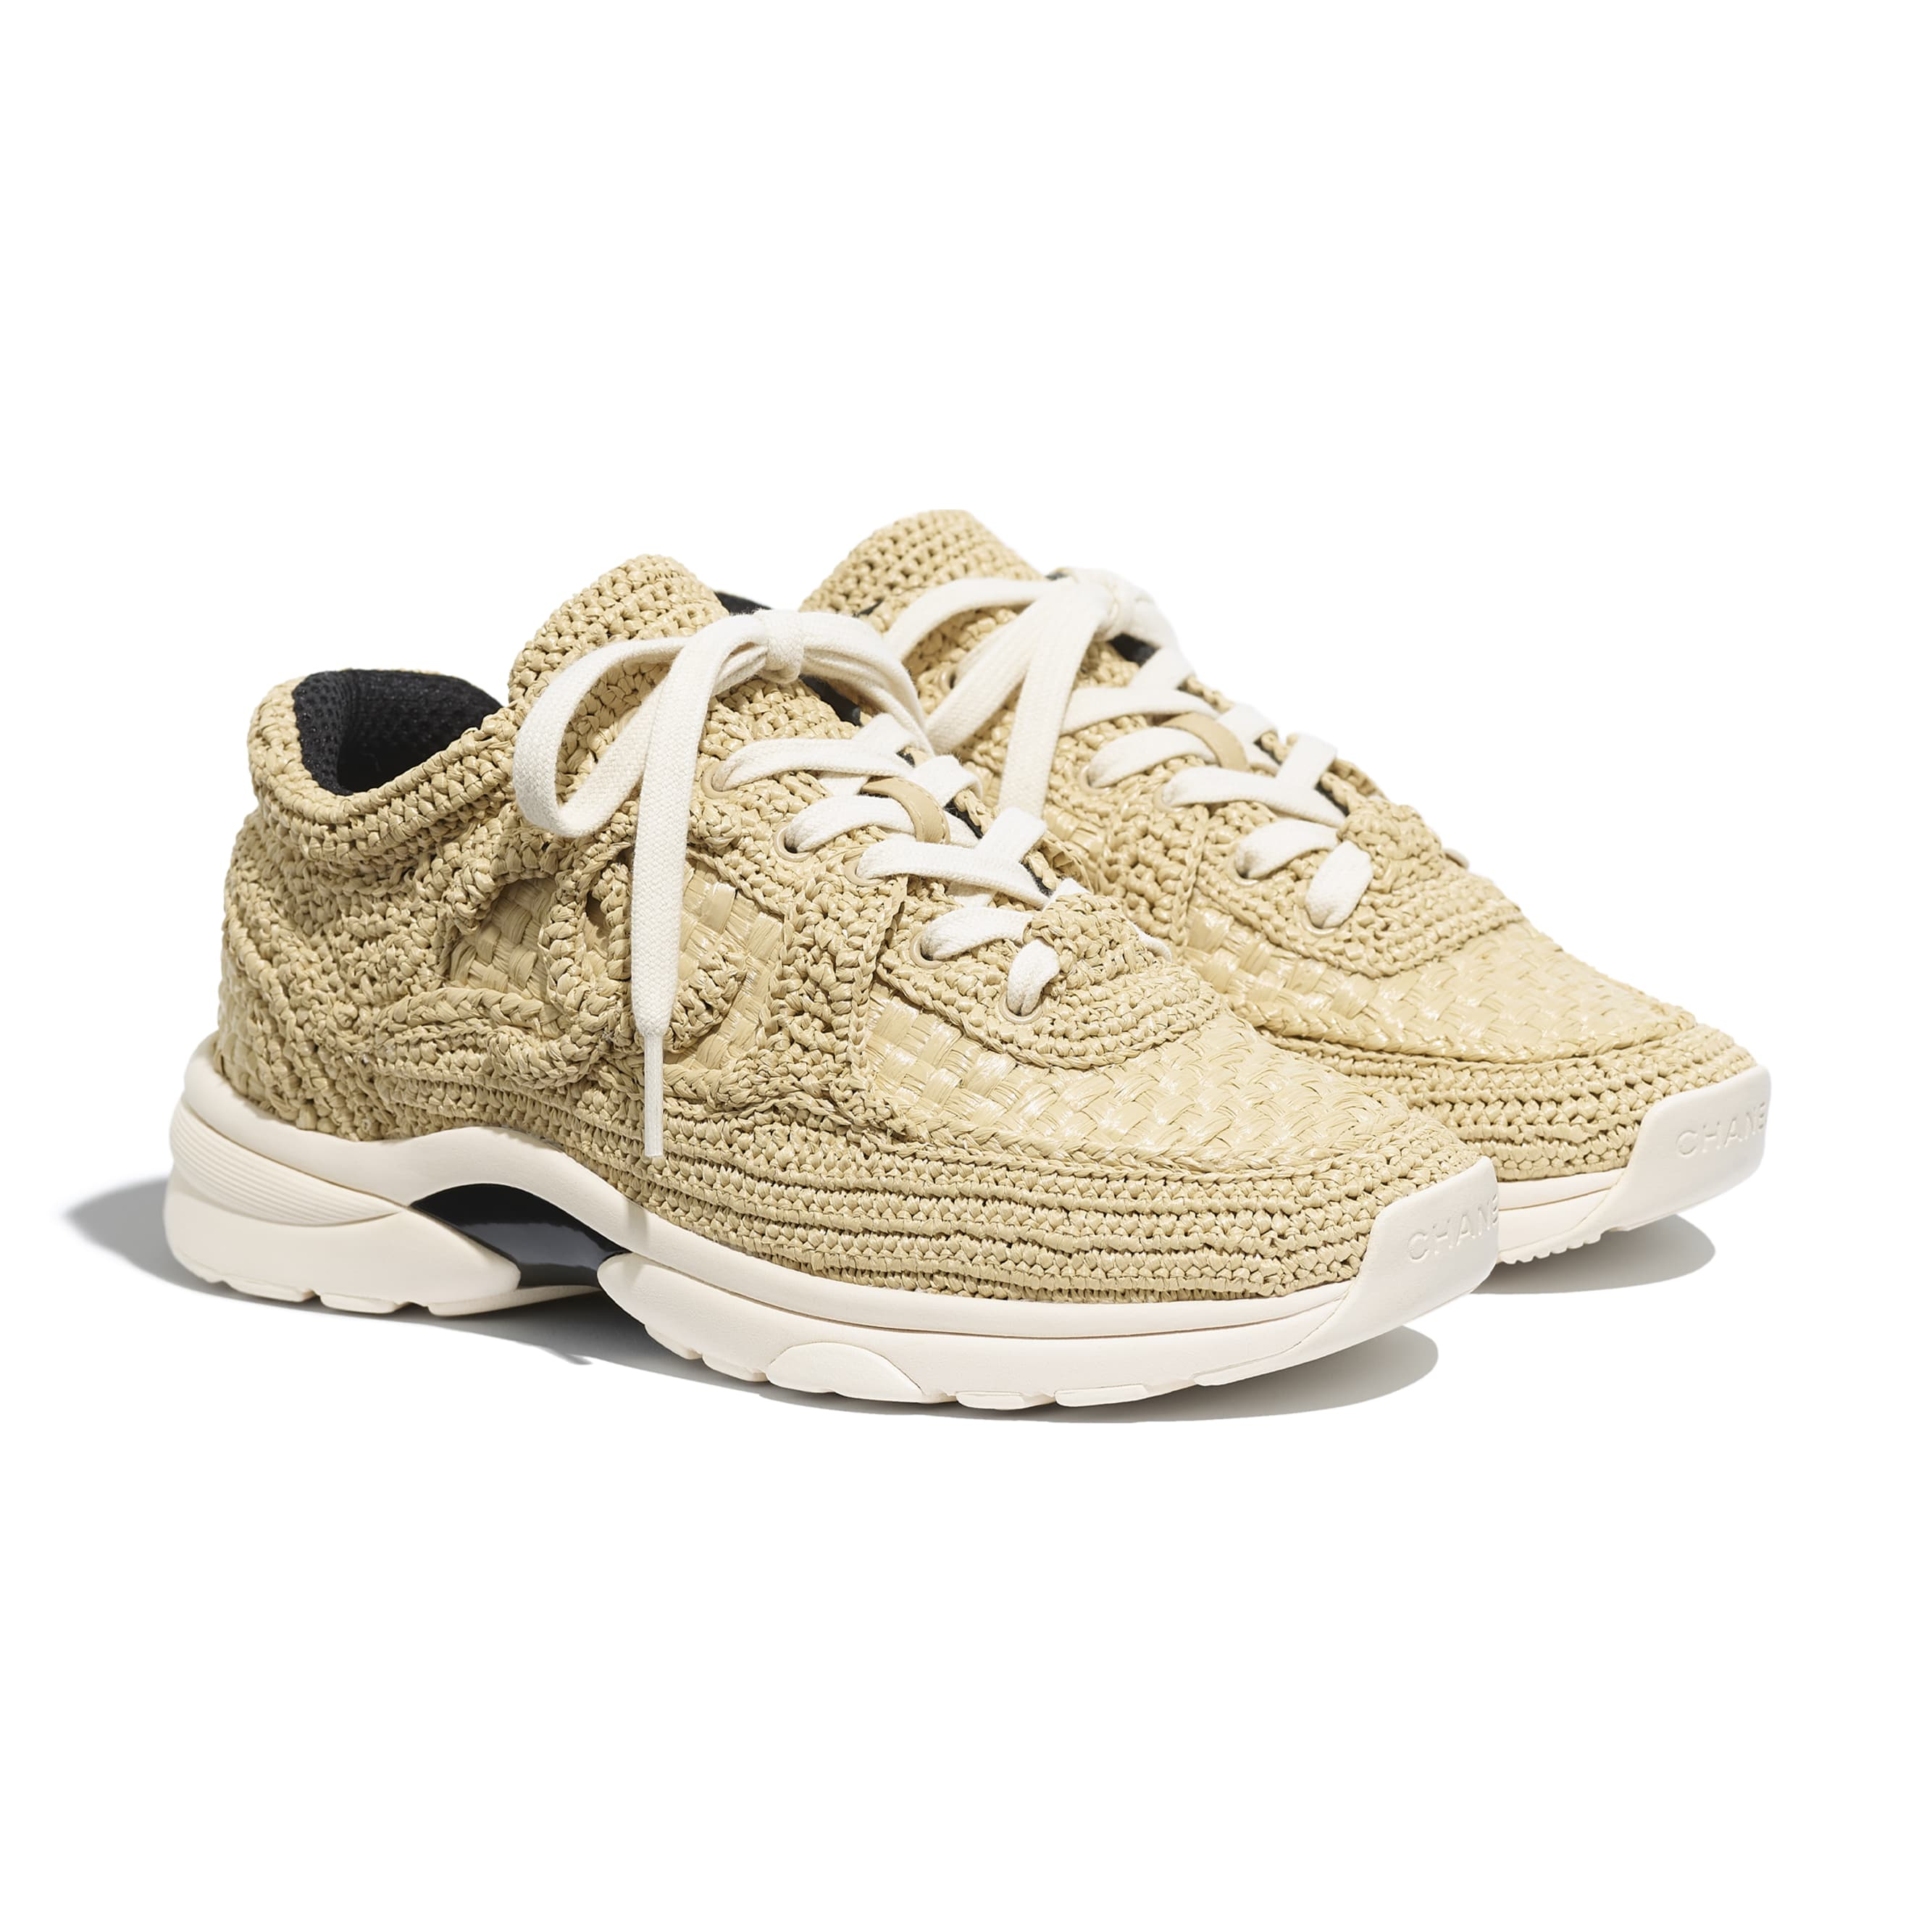 Trainers - Beige - Braided Raffia - CHANEL - Alternative view - see standard sized version